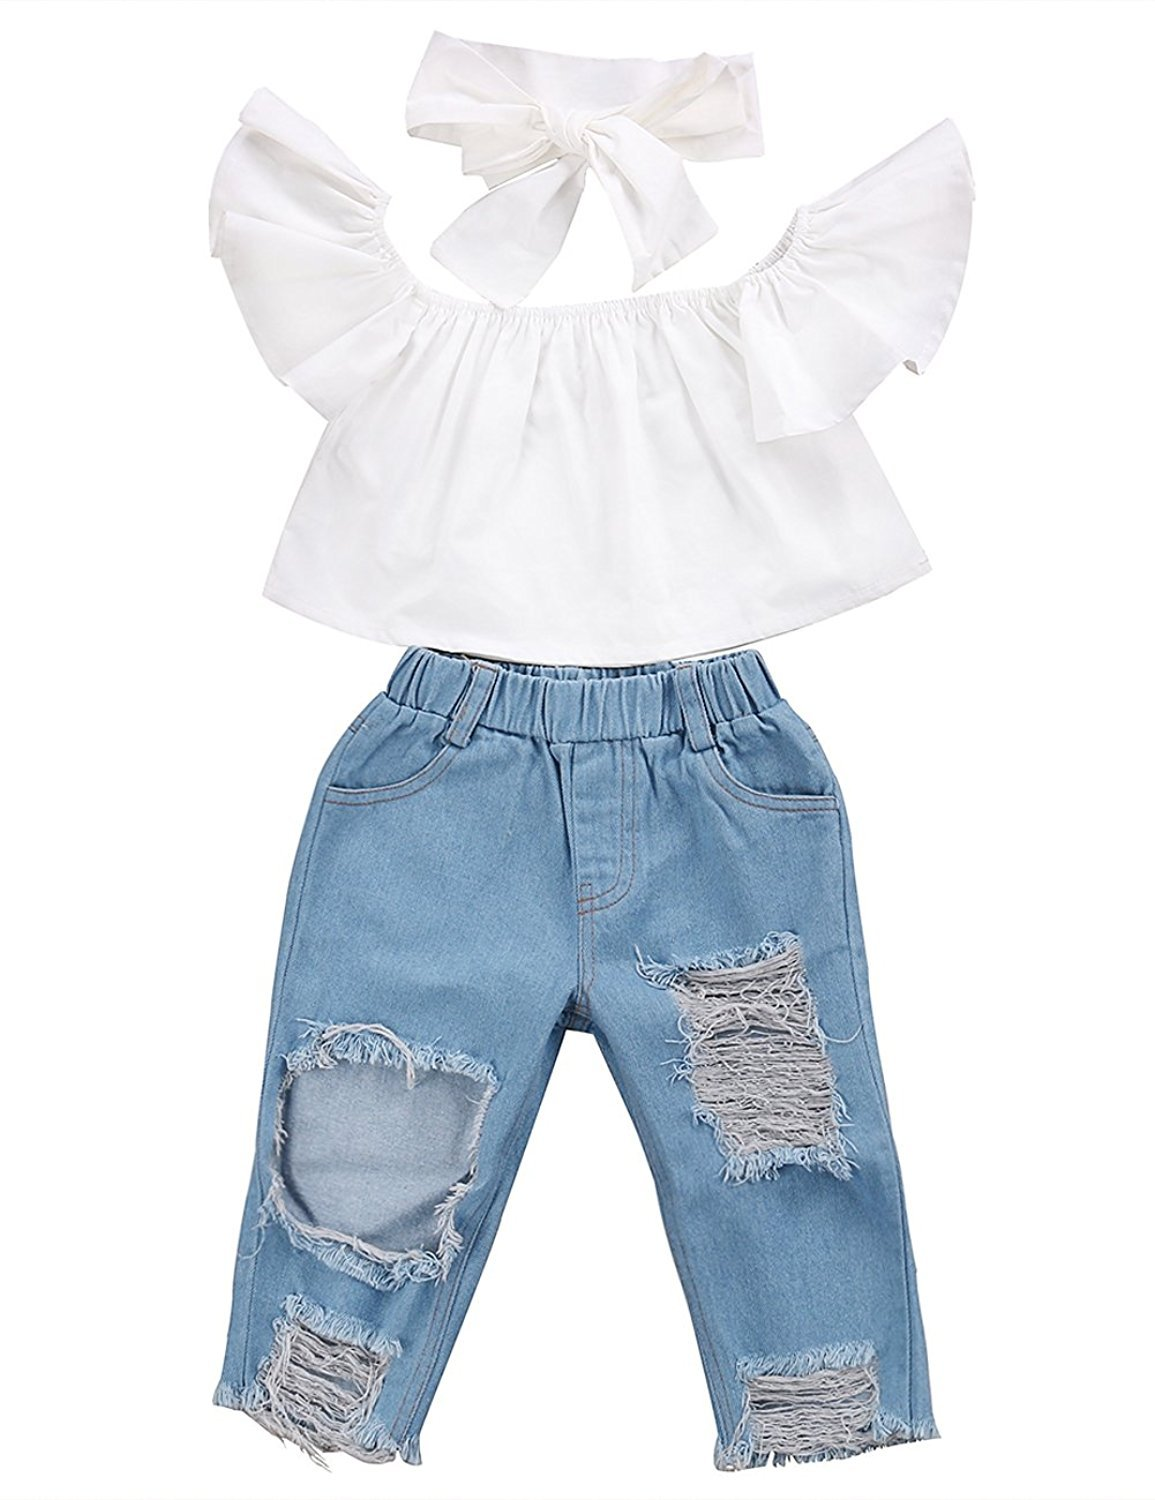 ViWorld Toddler Baby Girls Pant Set Kid Off Shoulder Tops Denim Pants Jeans 3PCS Outfits Set (White, 100(3-4Years))